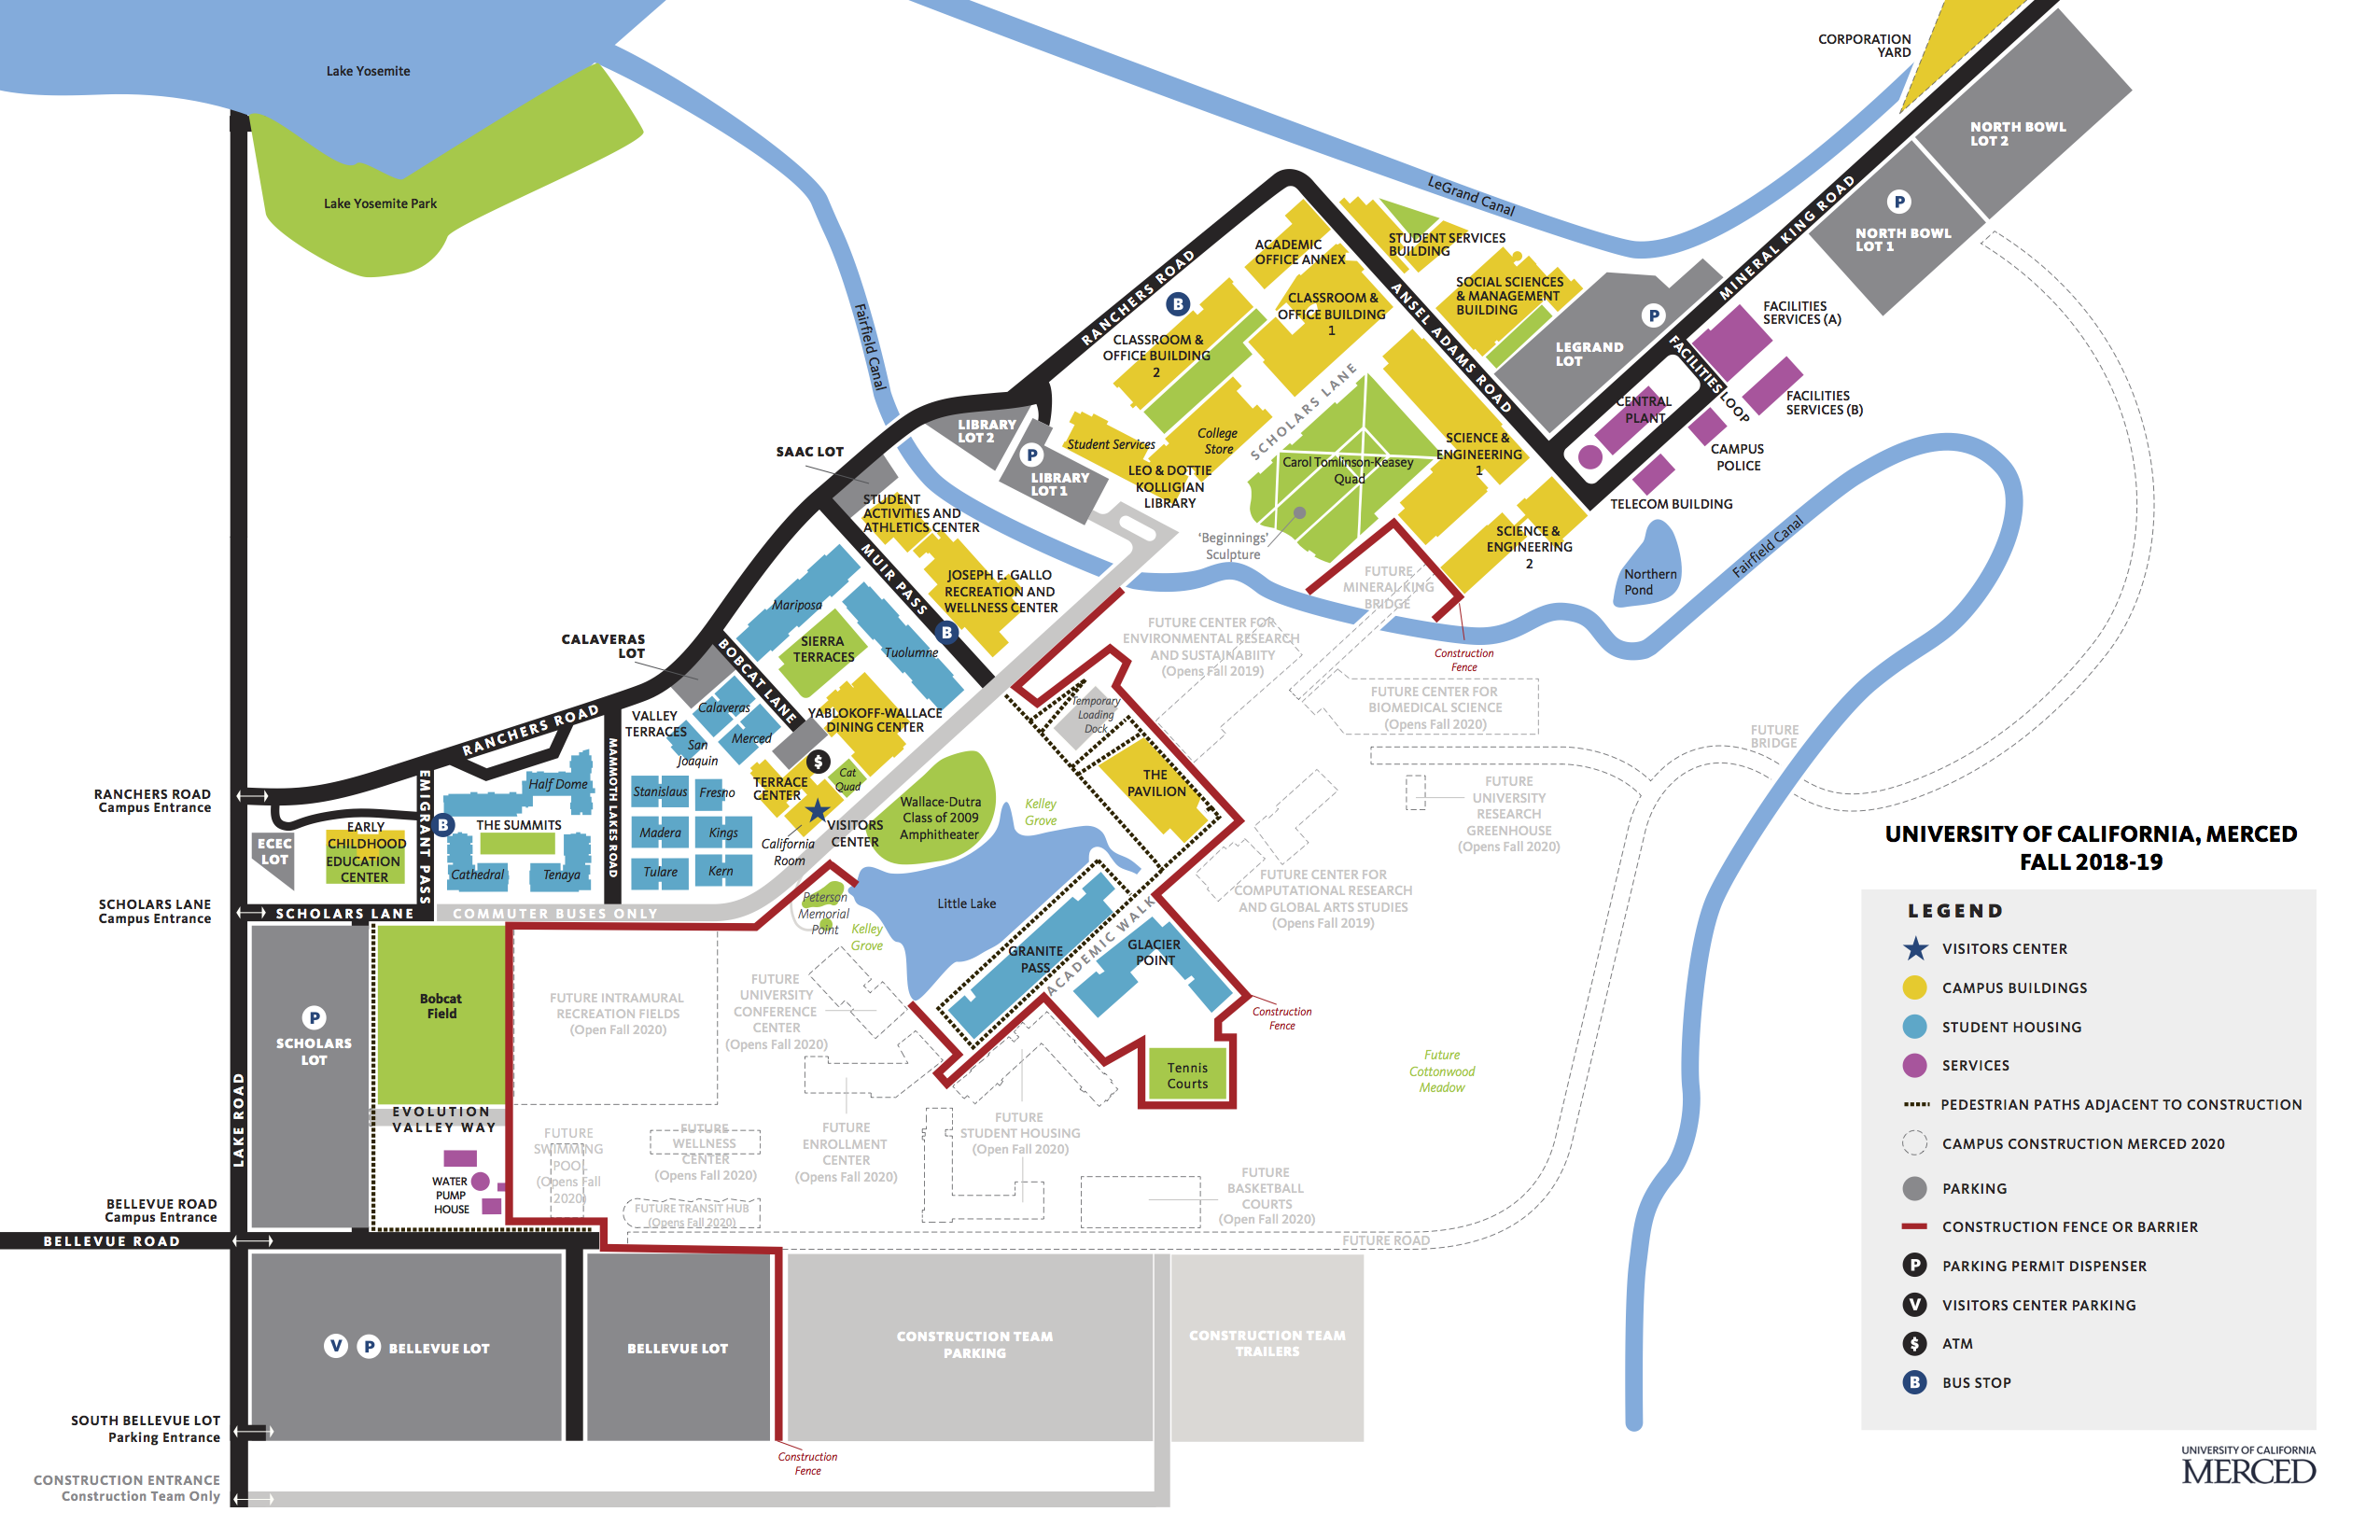 merced college campus map Uc Merced Campus Map Directions Center For Cellular And Biomolecular Machines merced college campus map